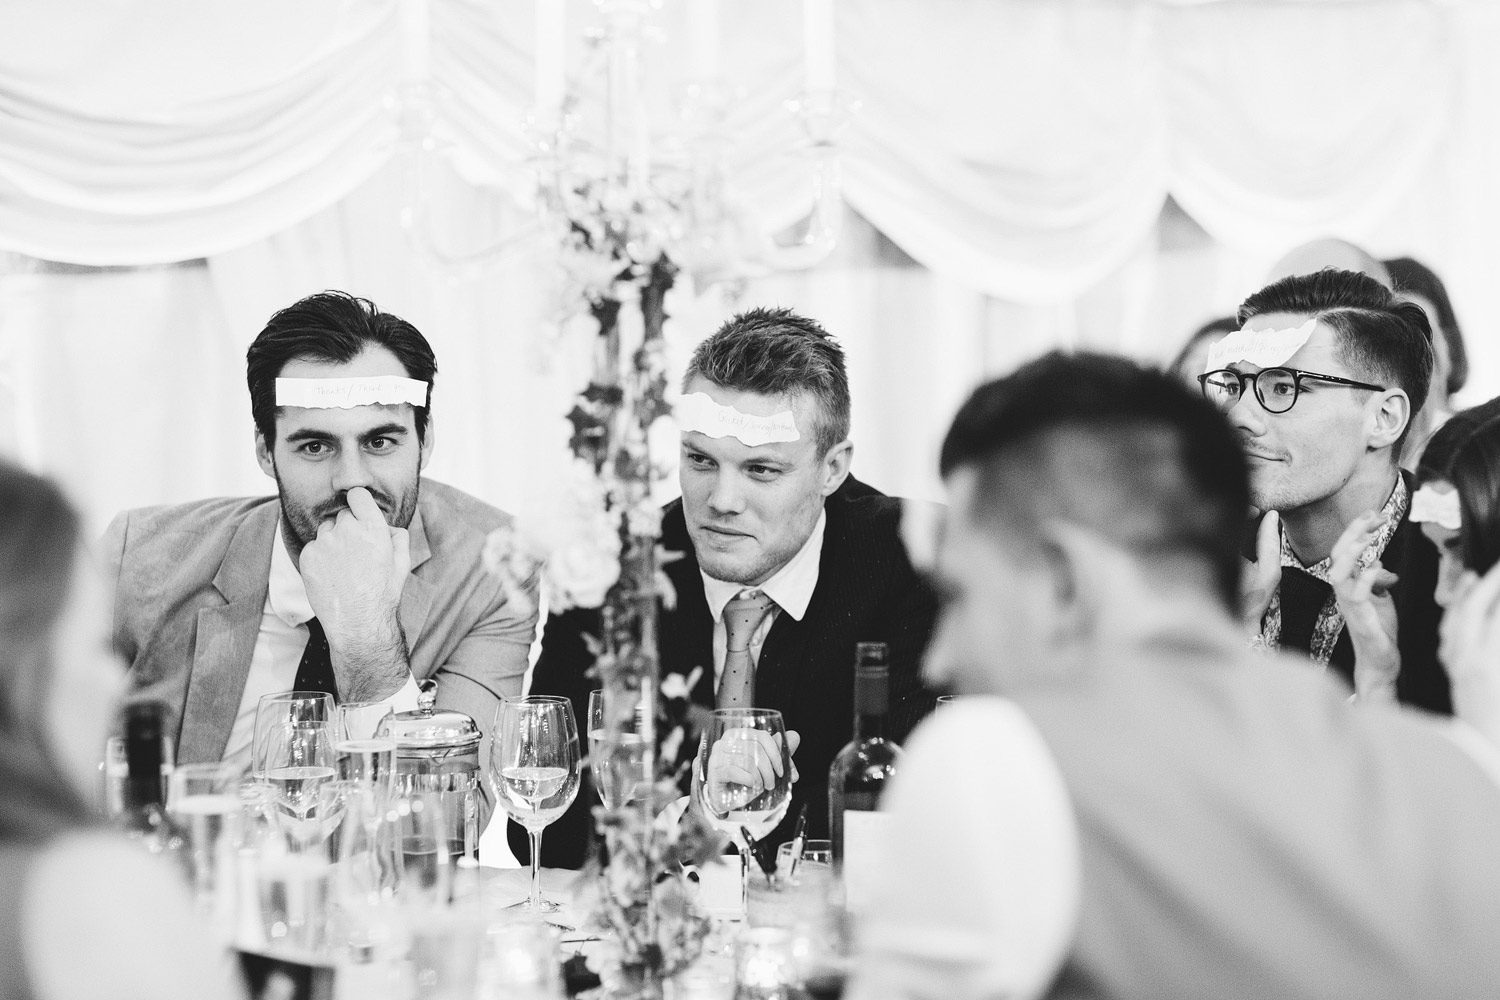 Guests play a game with paper stuck to their foreheads while at a wedding